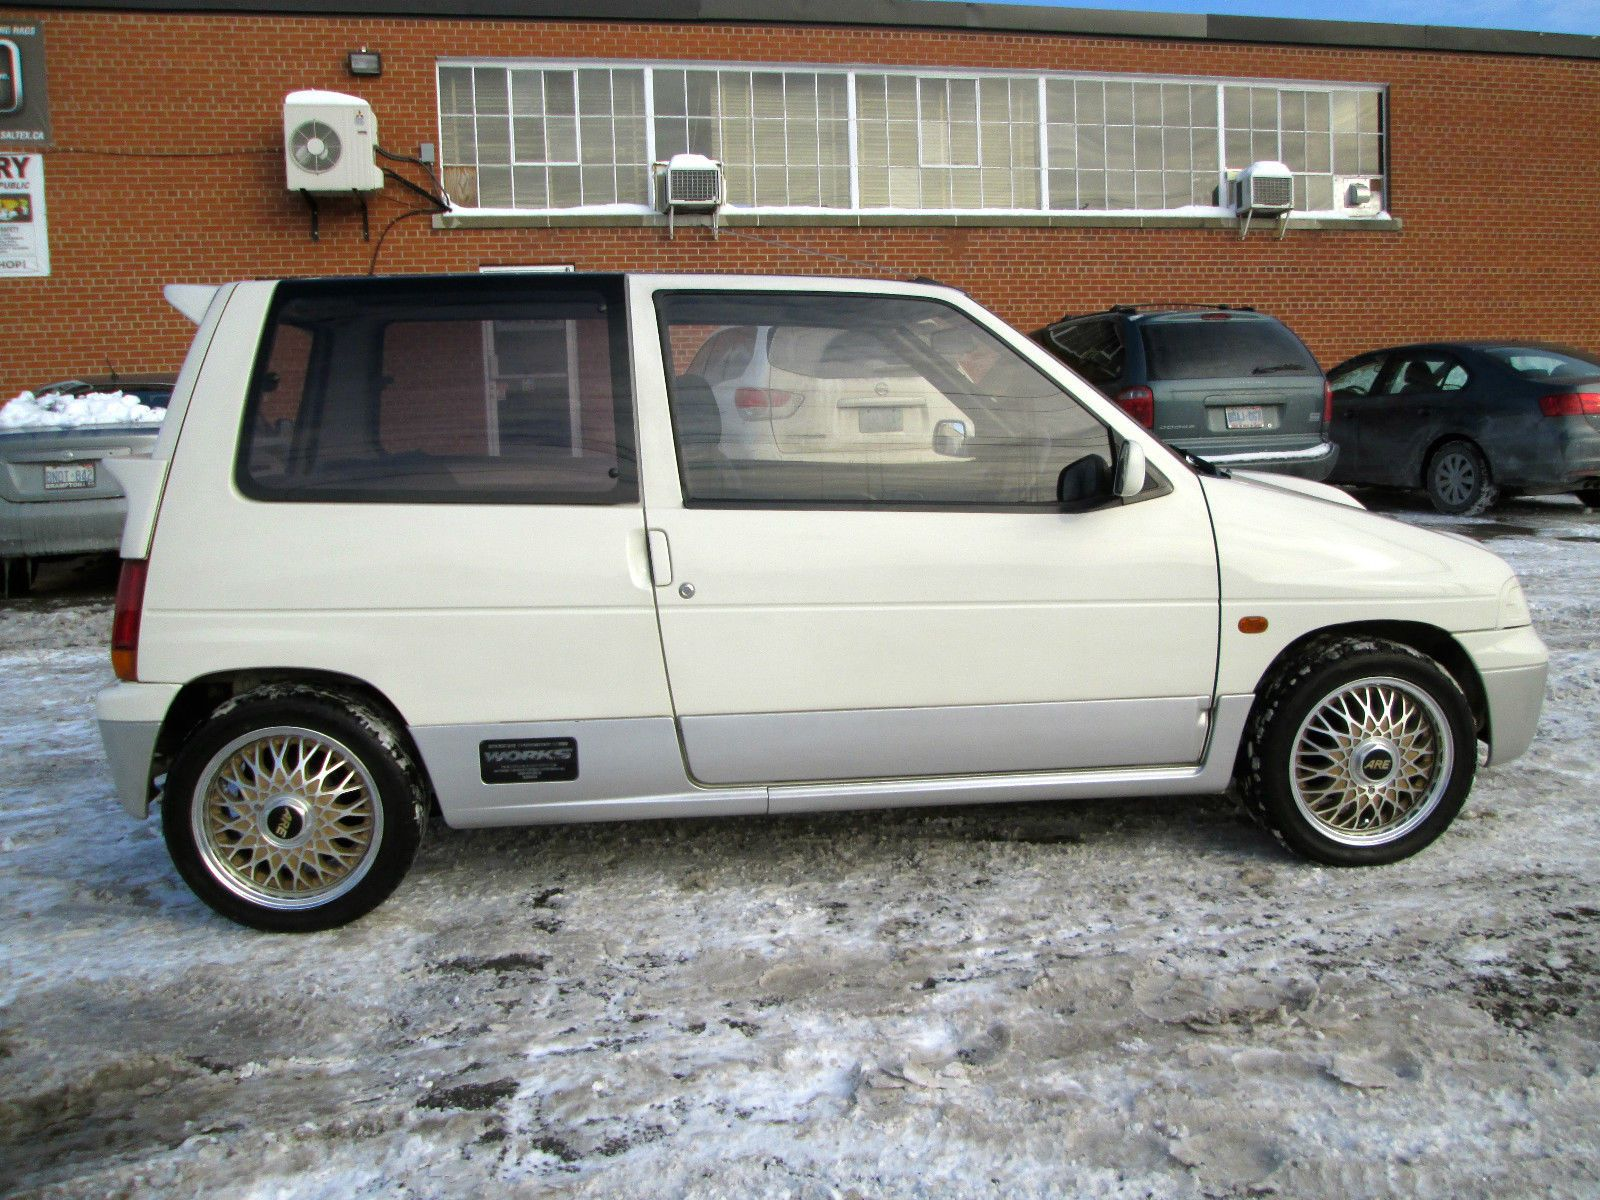 1988 Suzuki Swift Turbo